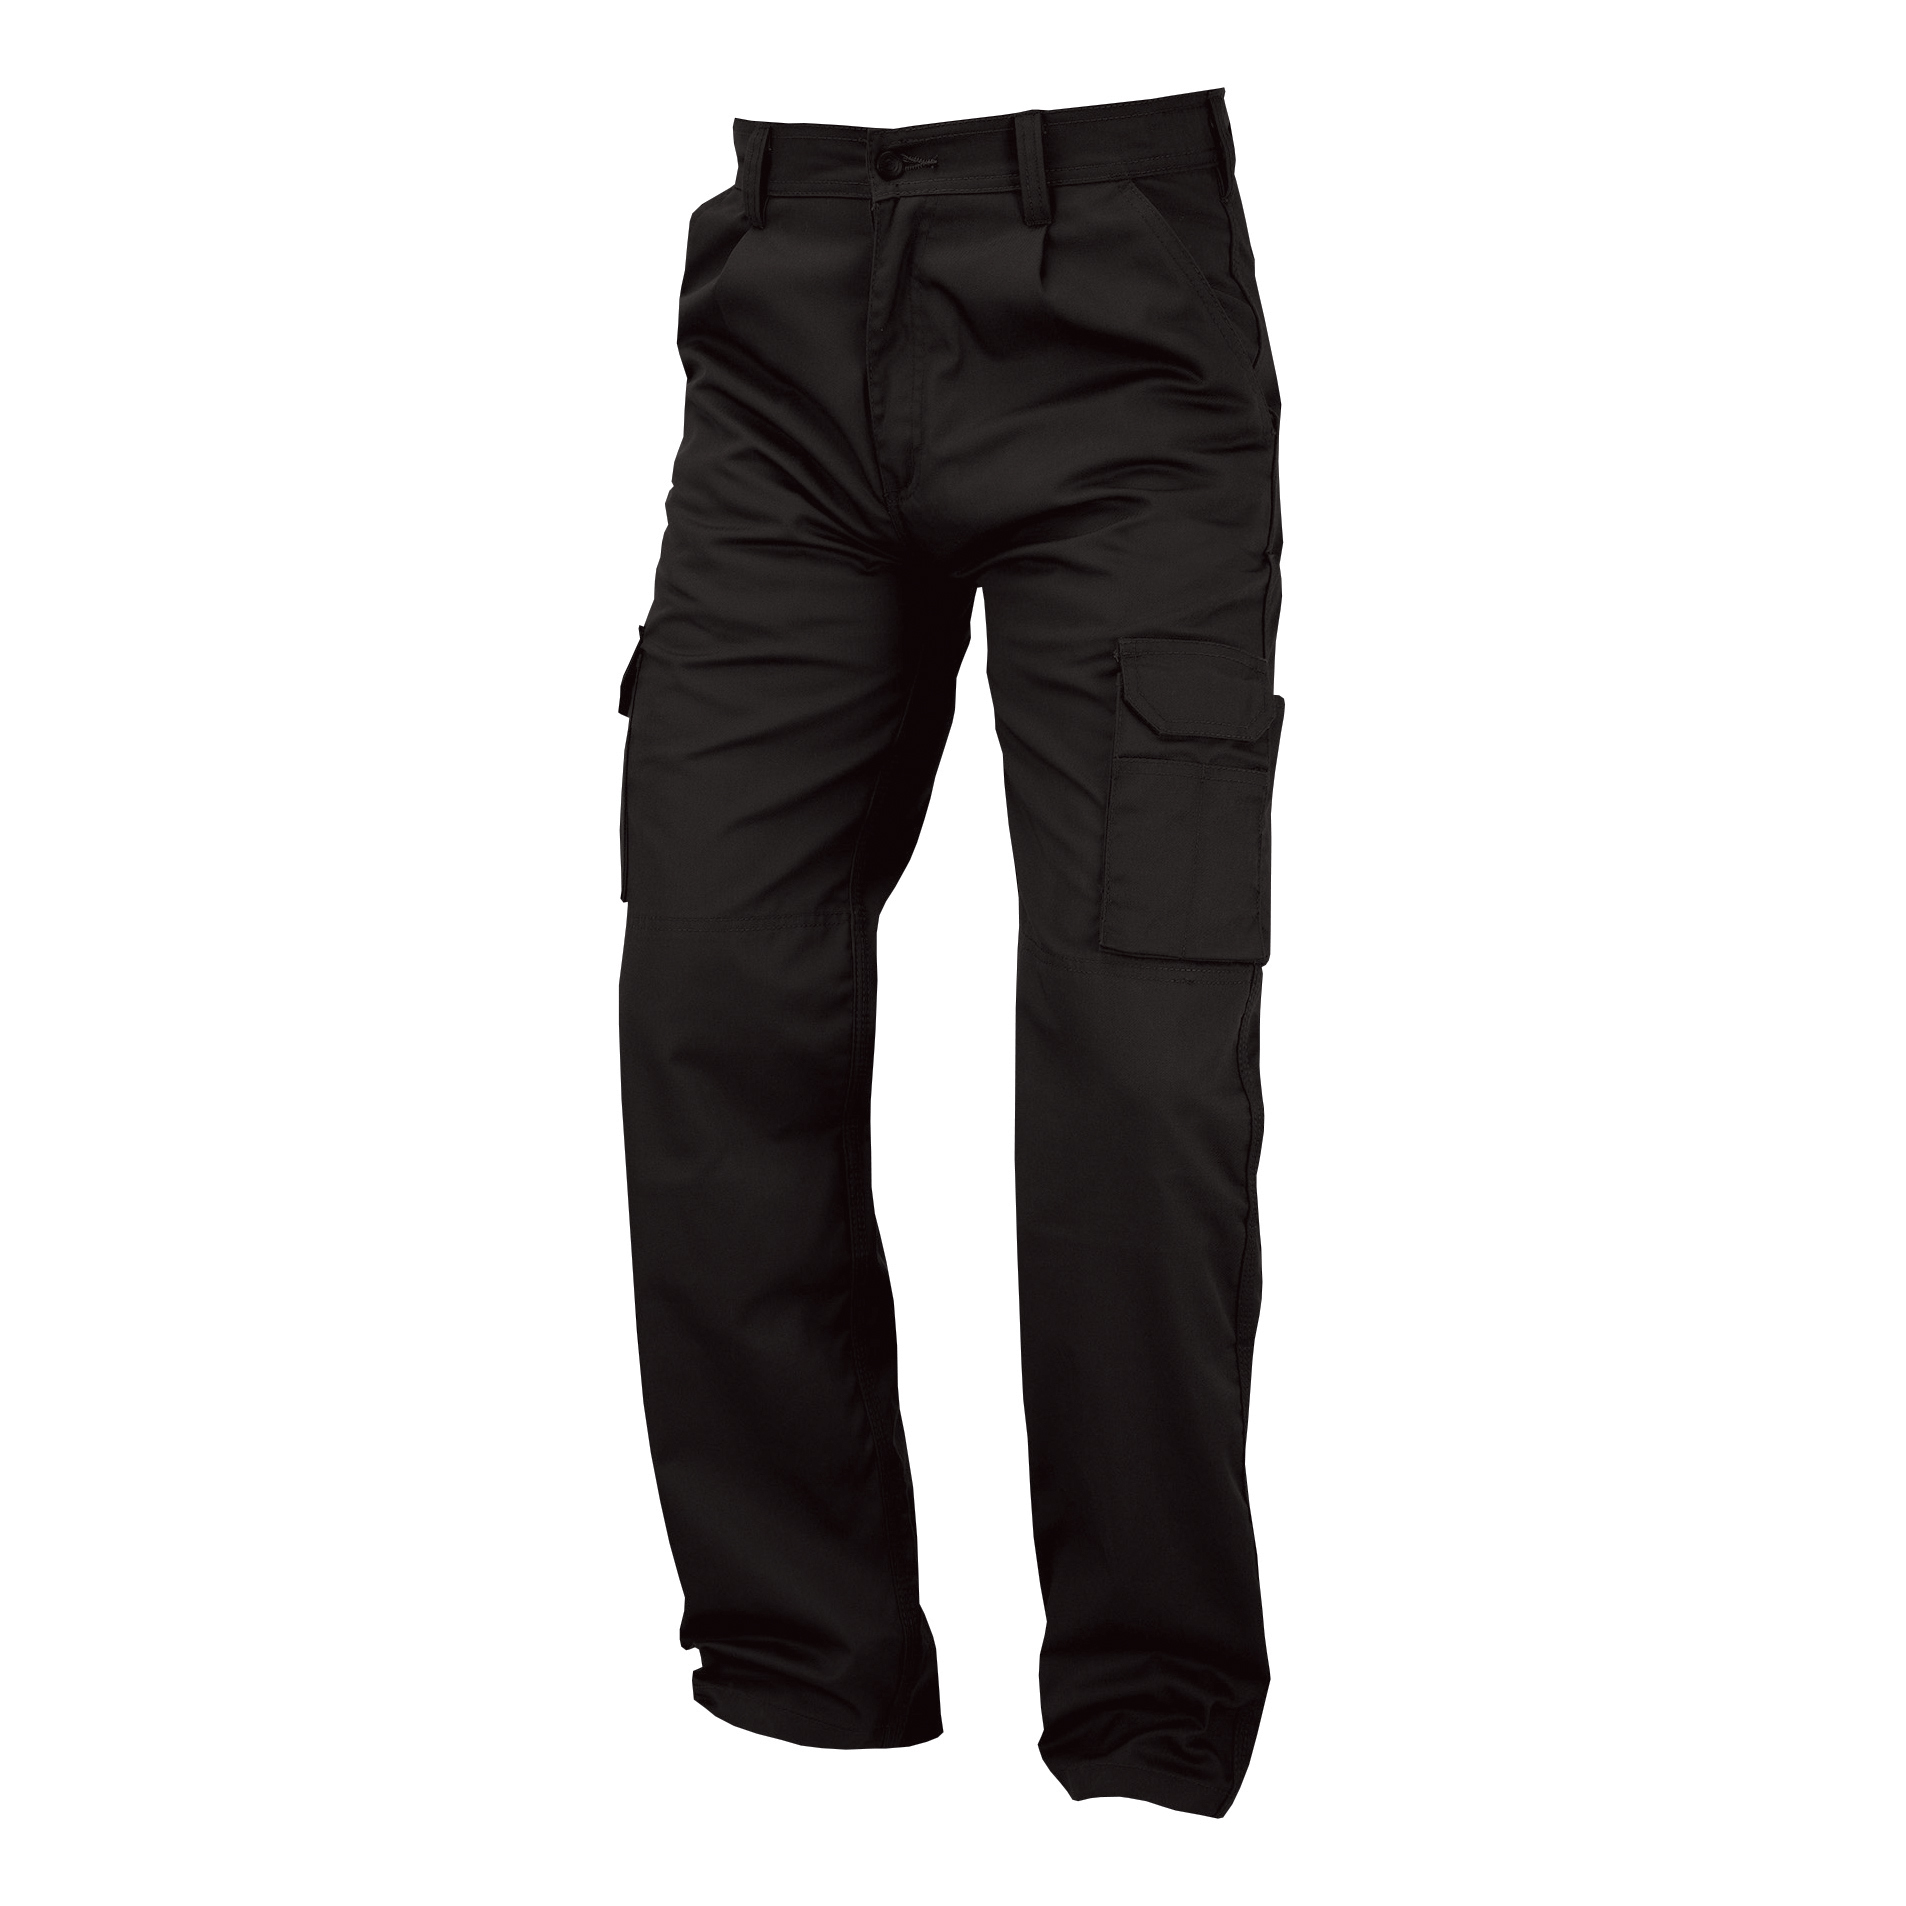 Combat Trousers Multifunctional 30in Regular Black Ref PCTHWBL30 *Approx 3 Day Leadtime*